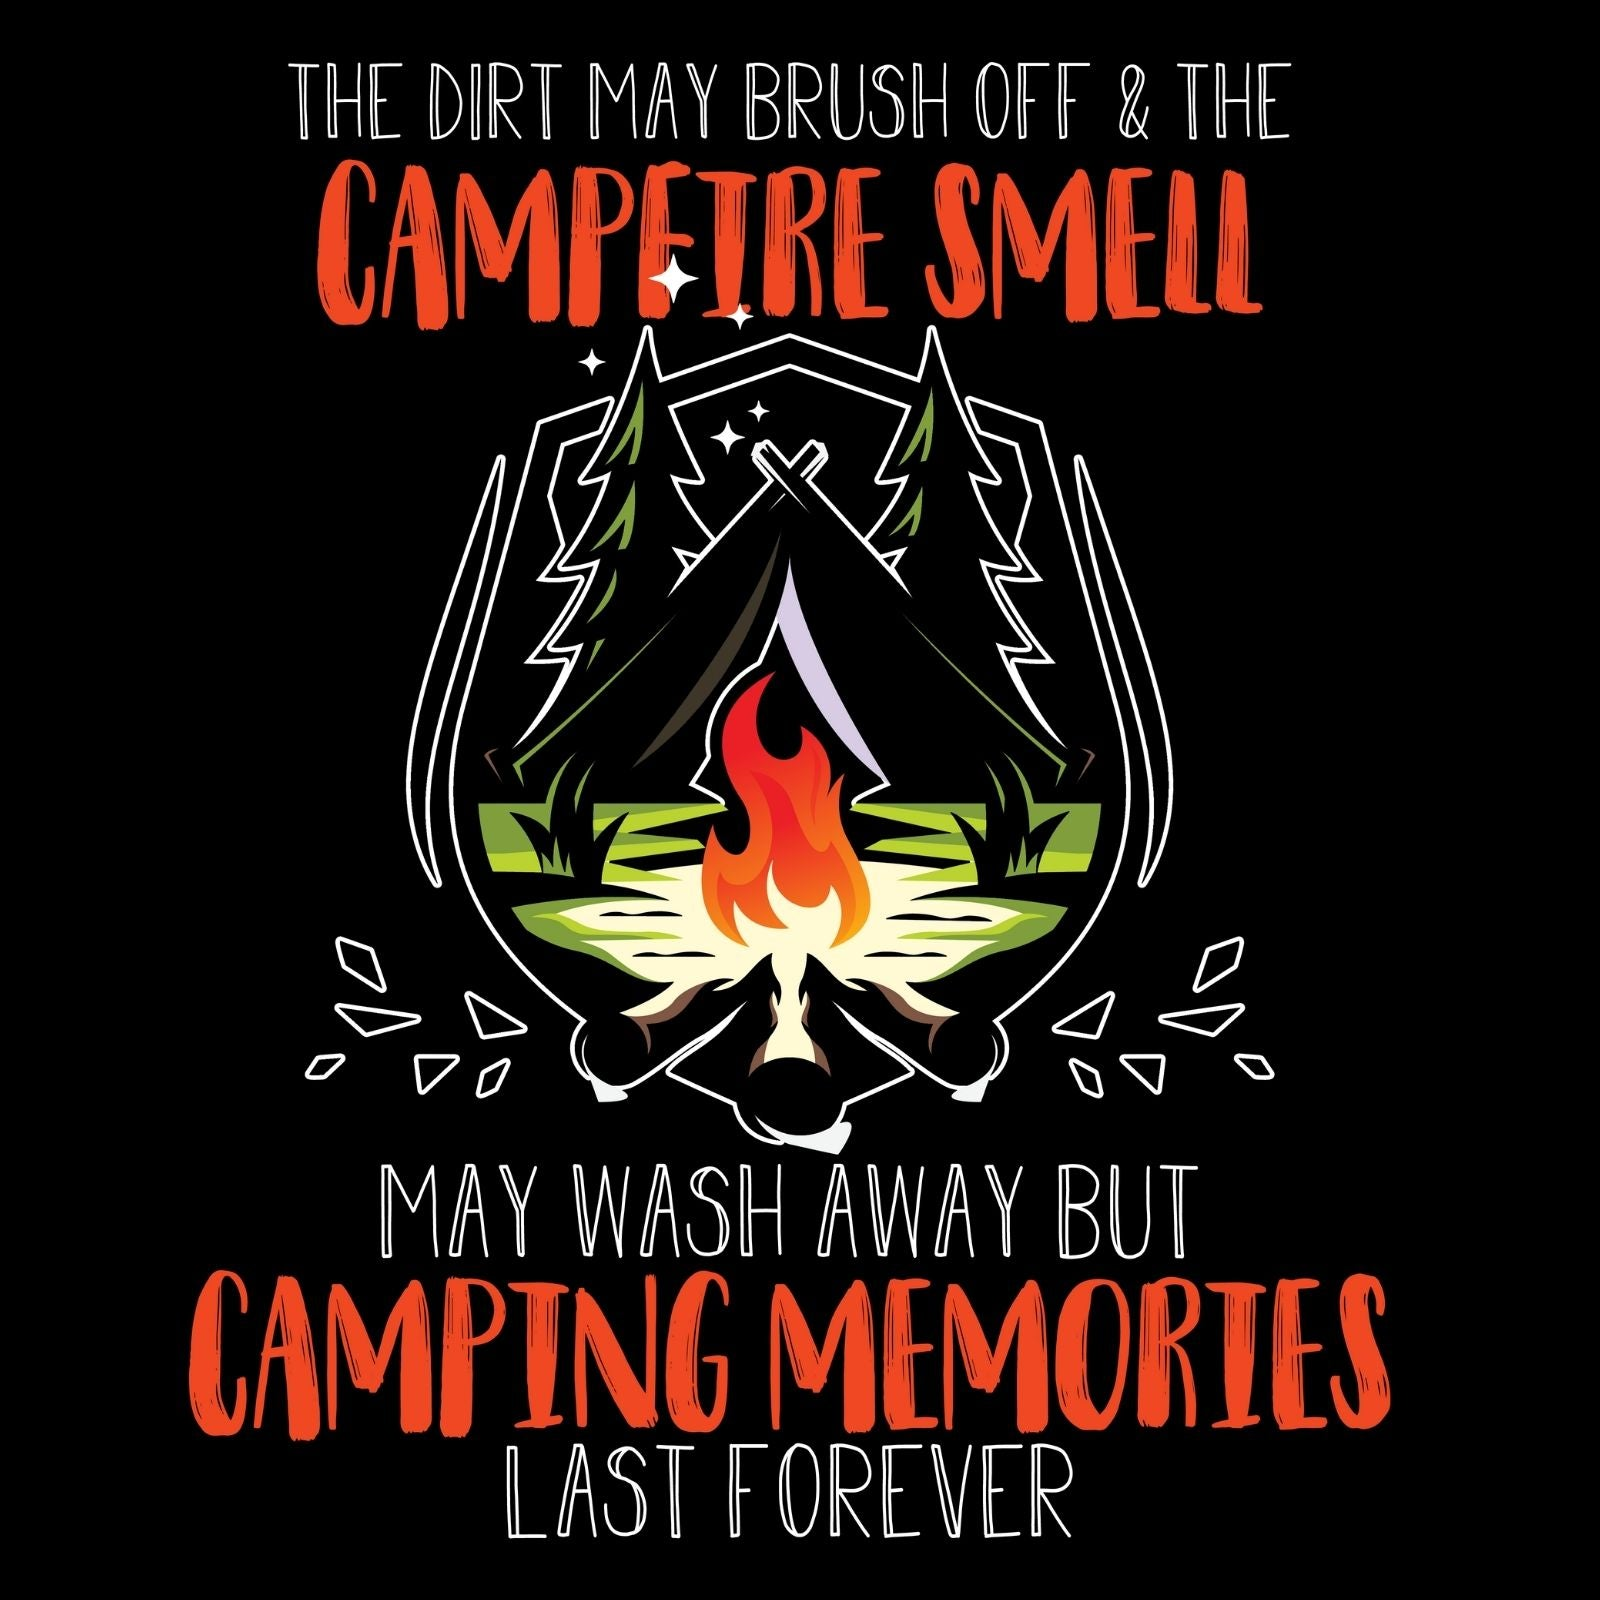 The Dirt May Brush Off And The Campfire Smell May Wash Away But CAmping Memories Last Forever - Bastard Graphics